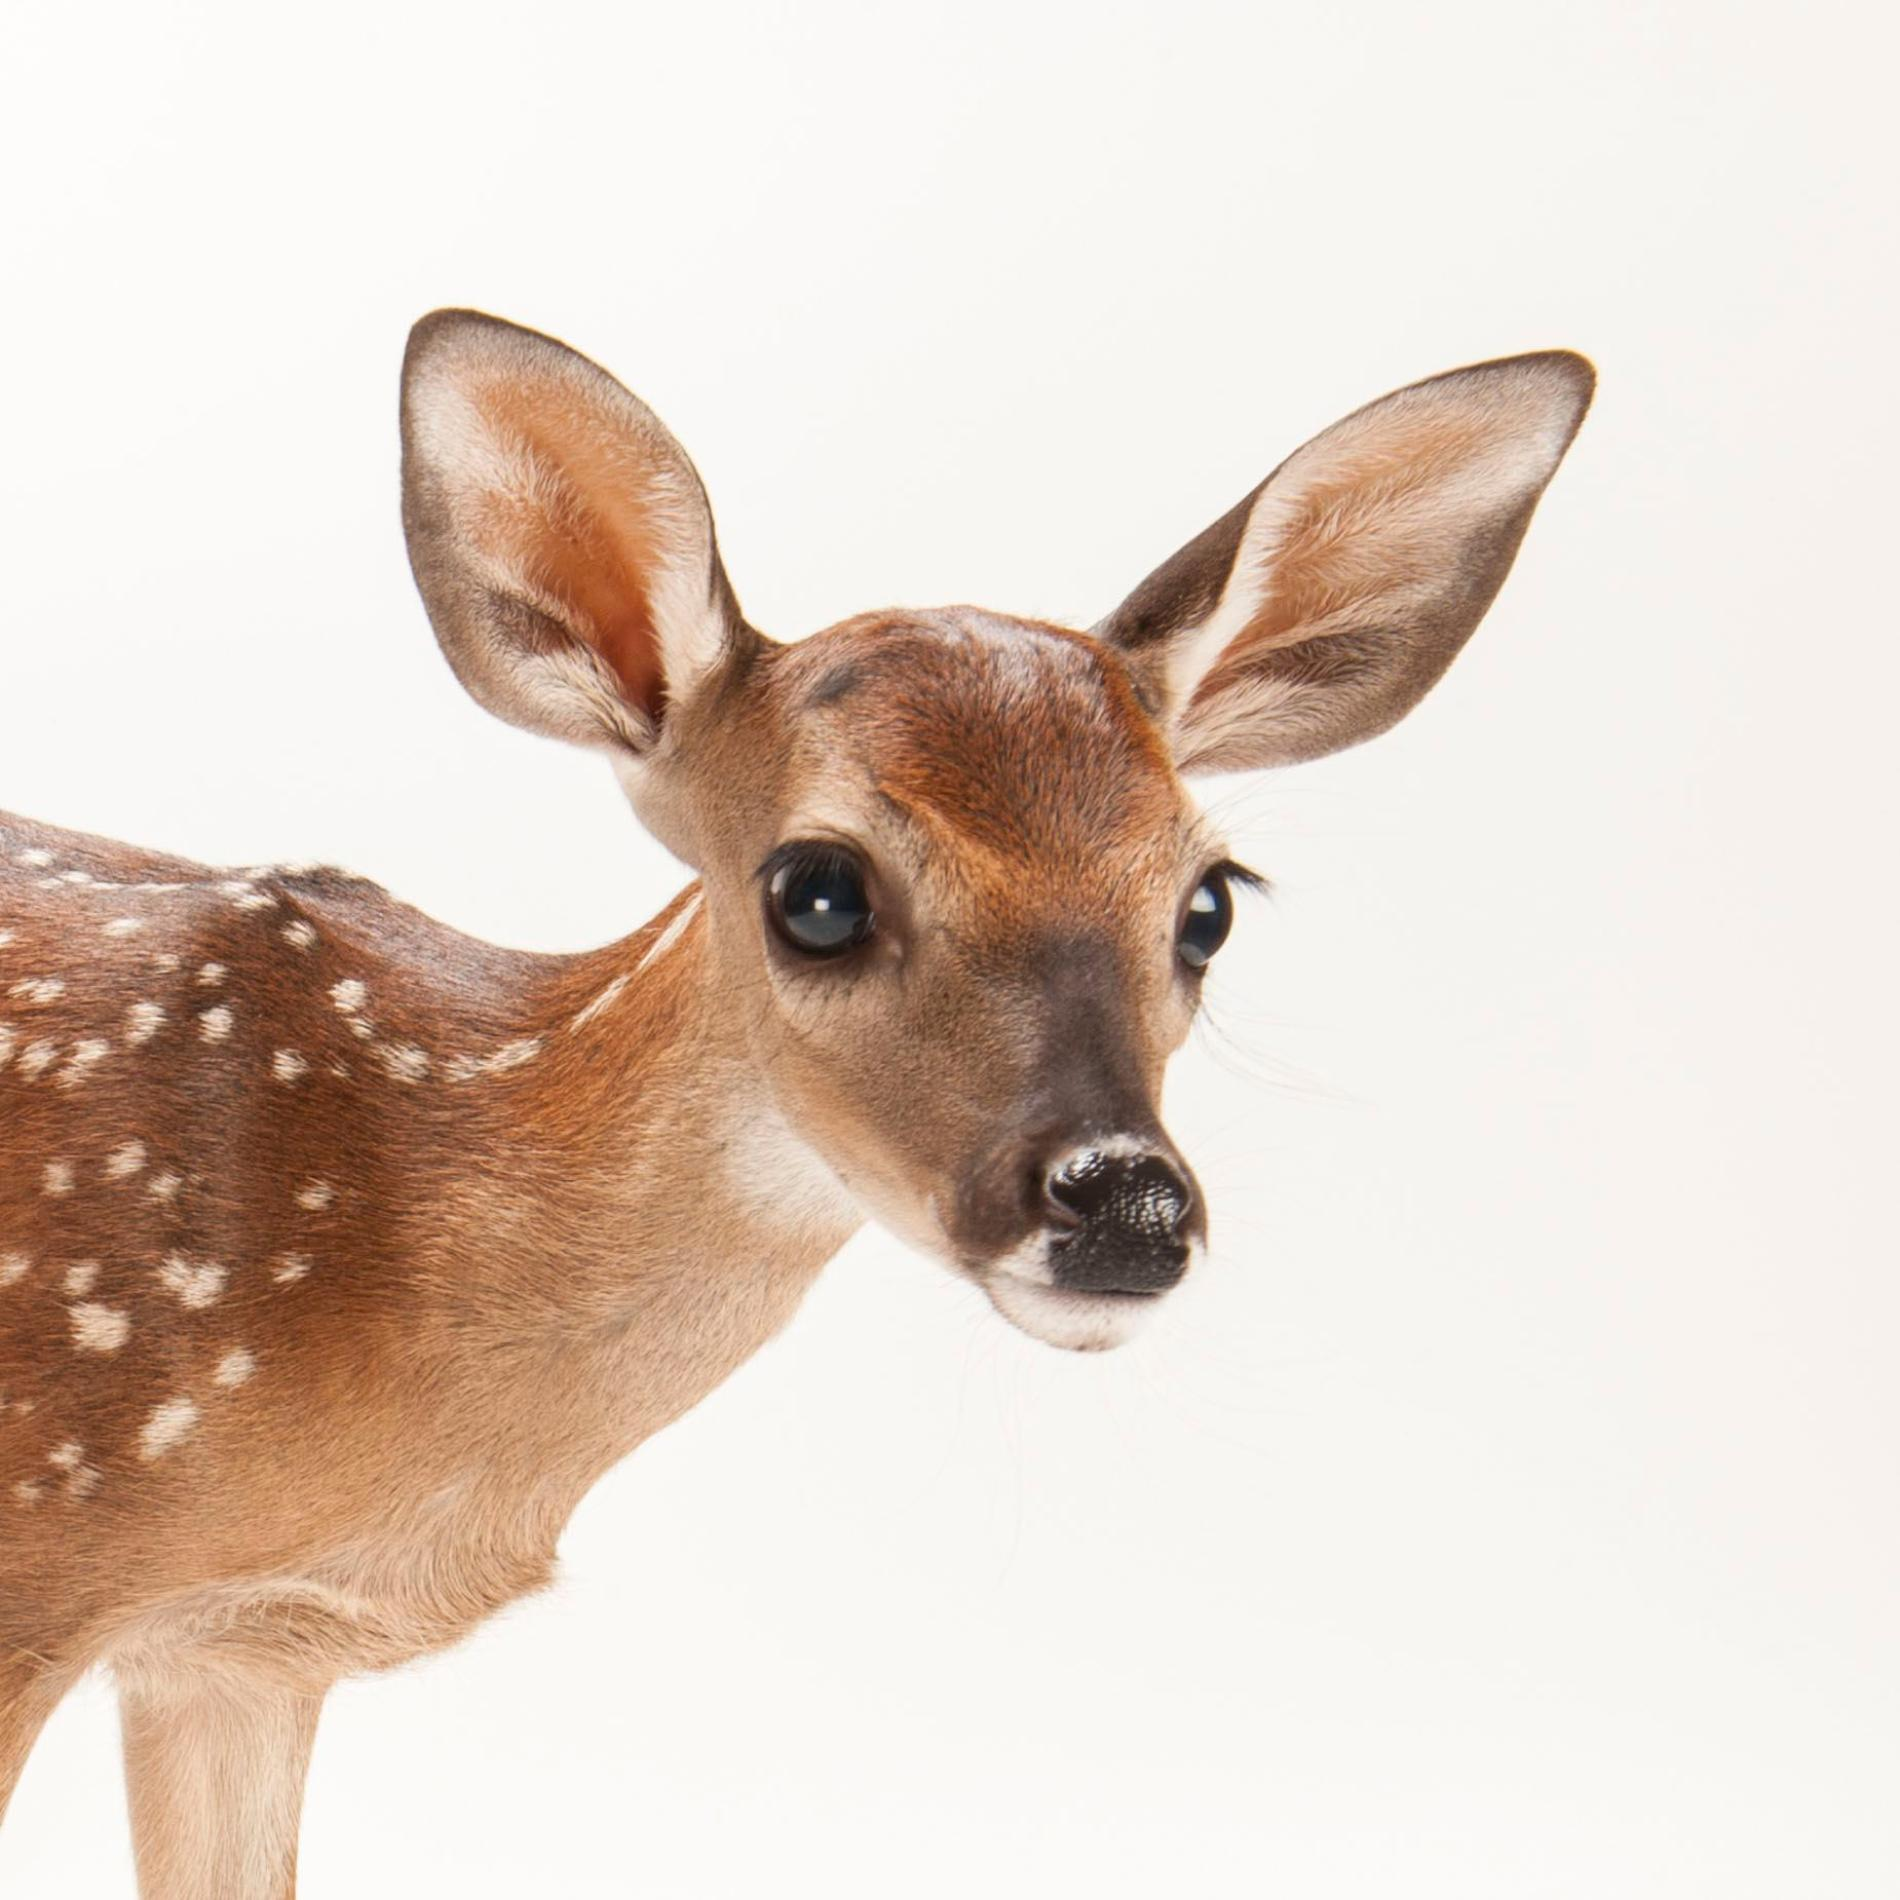 White-Tailed Deer | National Geographic